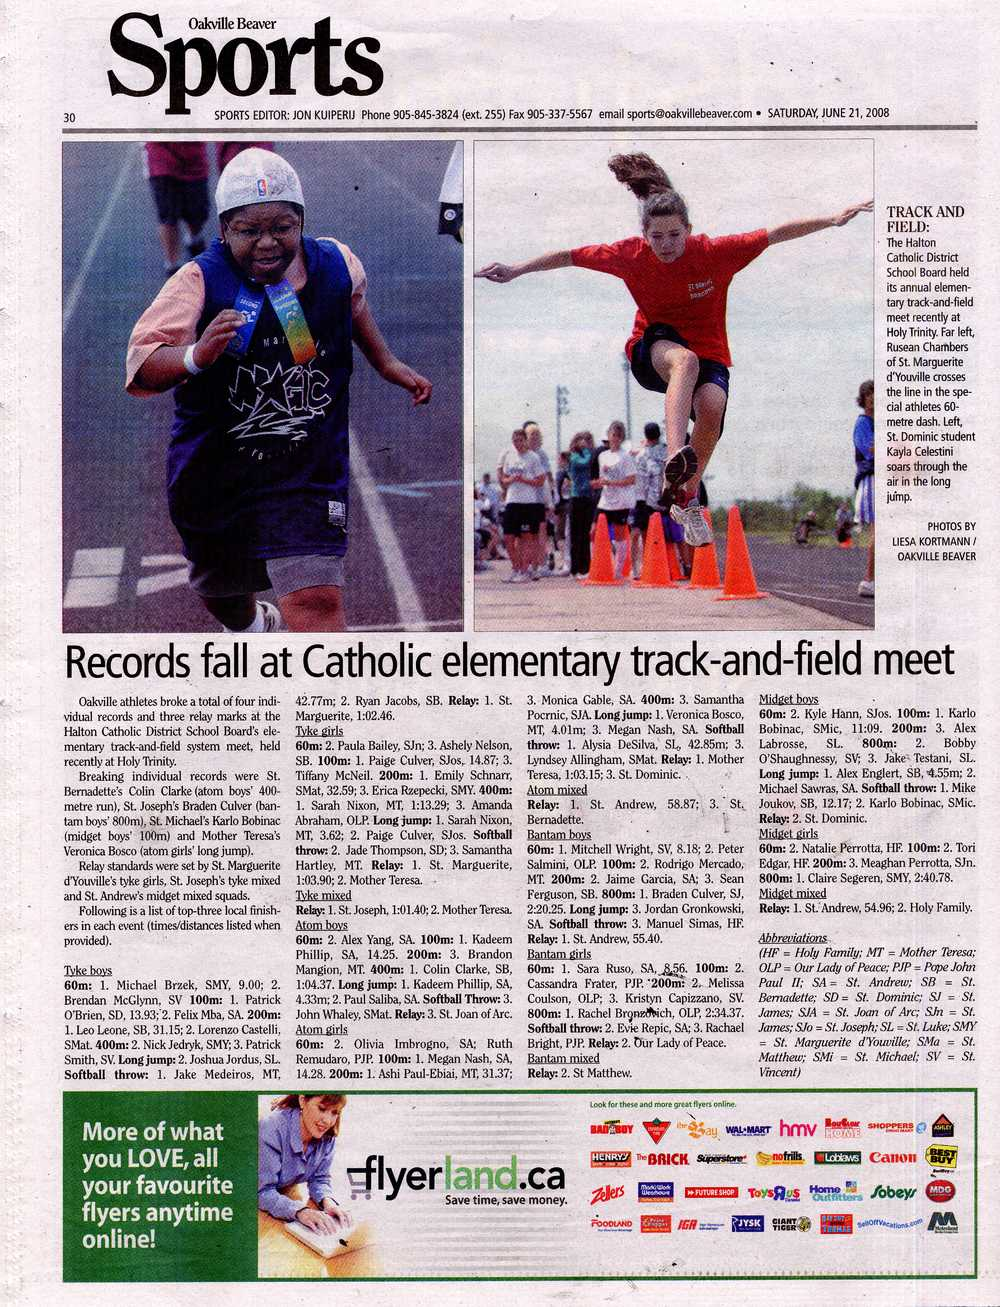 Records fall at Catholic elementary track-and-field meet